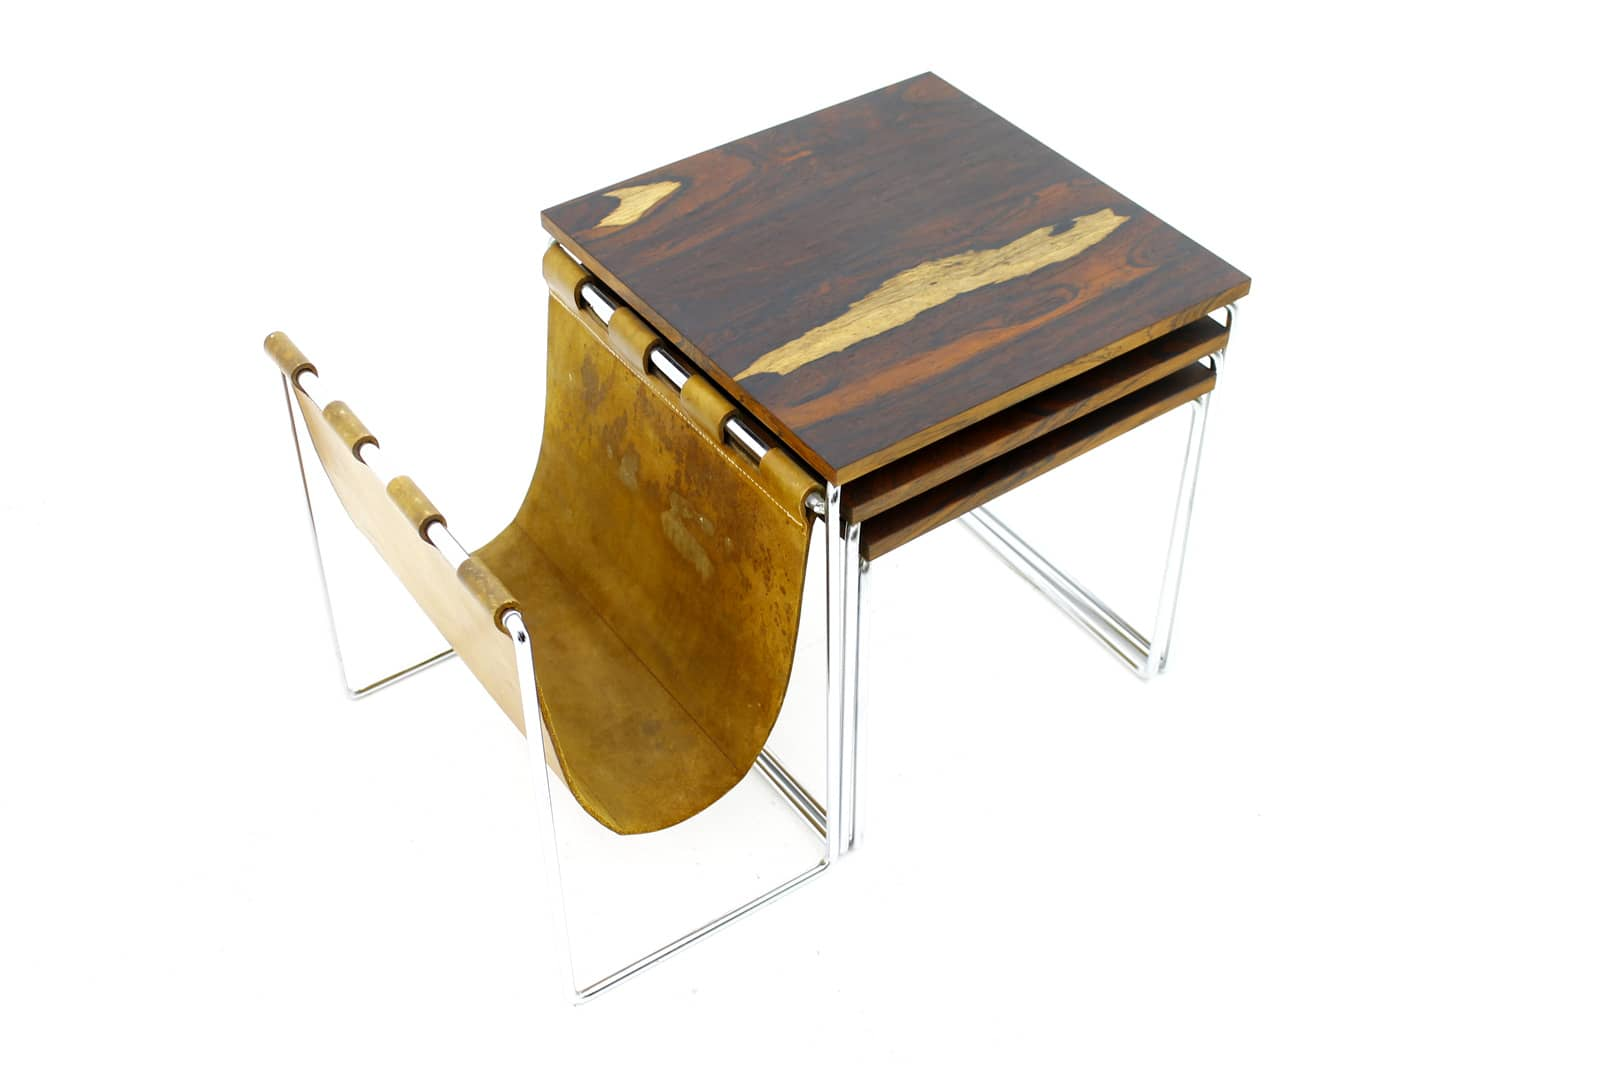 Beautiful Nesting Tables with Magazine Rack in Rosewood, Leather and Steel